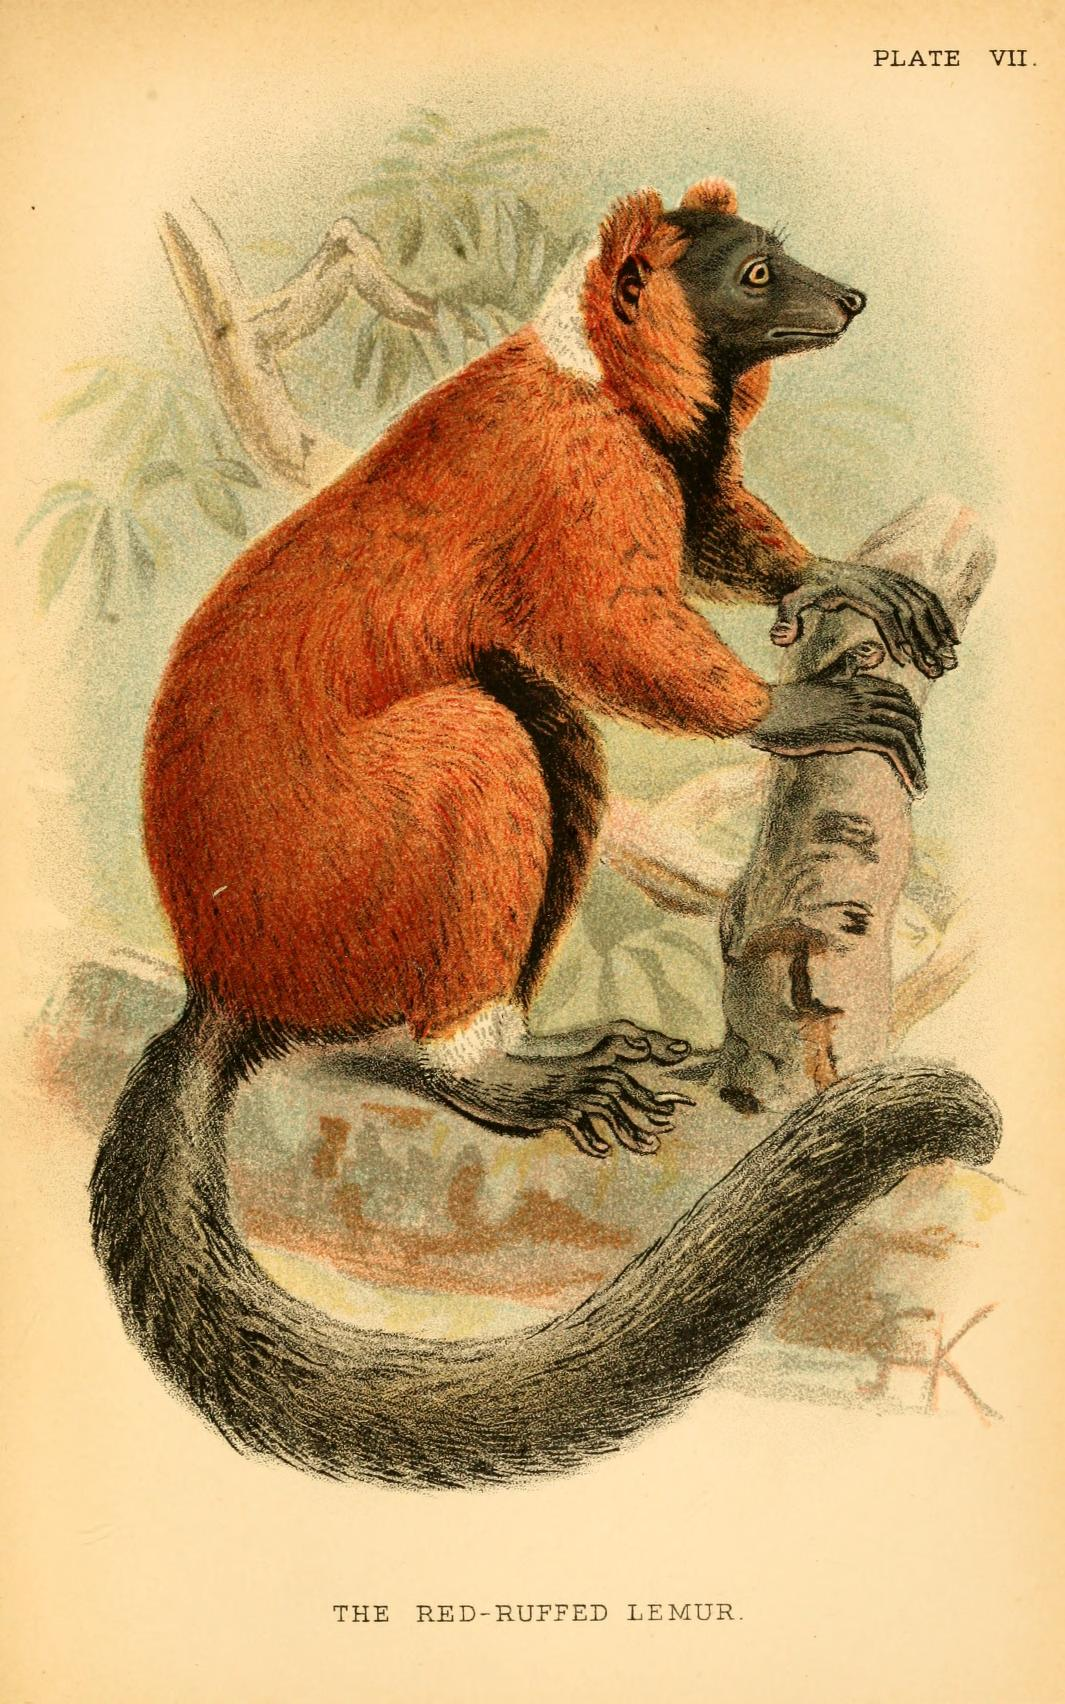 painting of a Red-ruffed Lemur